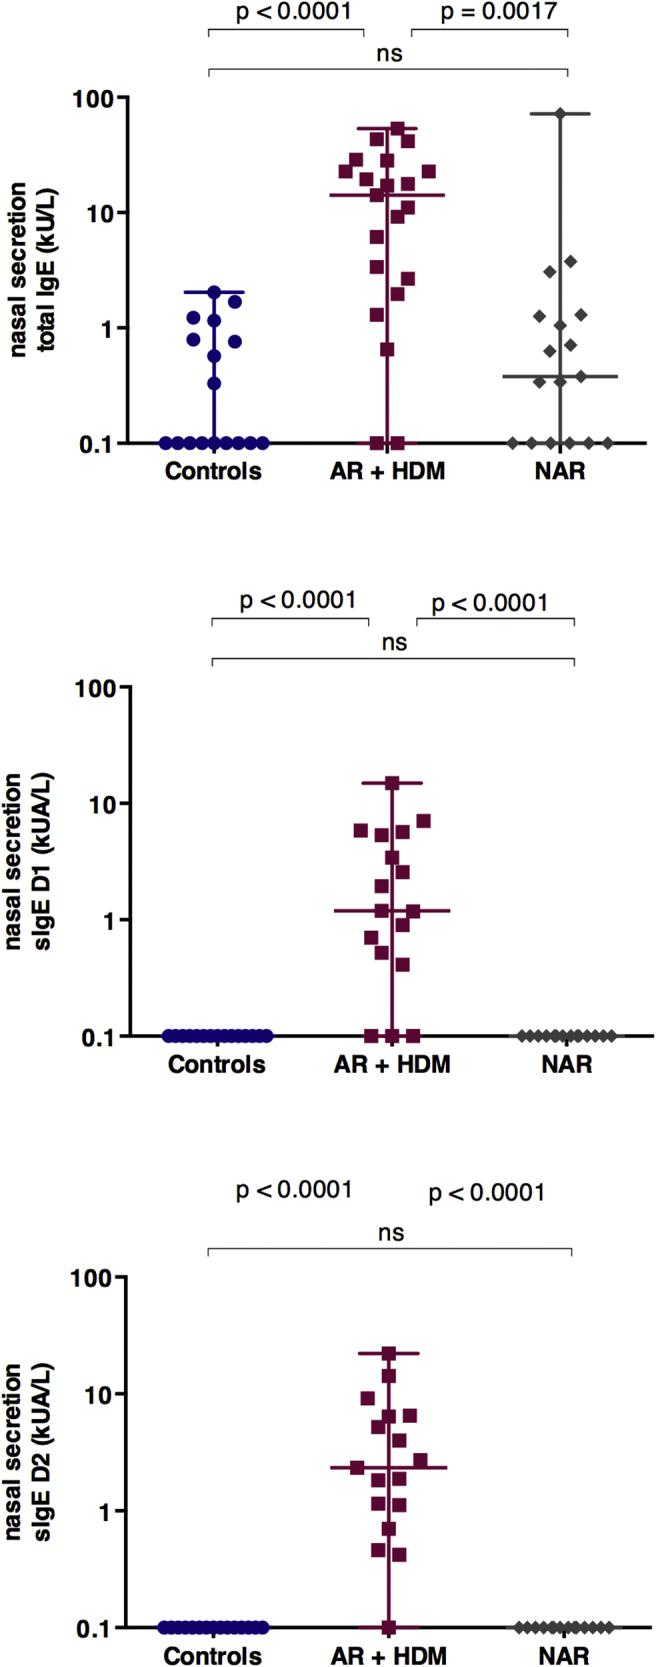 Comparison of total IgE and specific IgE to D1 and D2 in nasal secretion between groups. Fig. 3 . Comparison of total IgE (in kilo international units (IU) of IgE per liter (kU/L) and sIgE (in kilo) international units (IU) of allergenspecific antibody per liter (kUA/L) to D1 (Dermatophagoides pteronyssinus) and D2 (Dermatophagoides farinae) in nasal secretion between groups, in log10. Kruskal-Wallis test results regarding the P-values are shown in the graphs